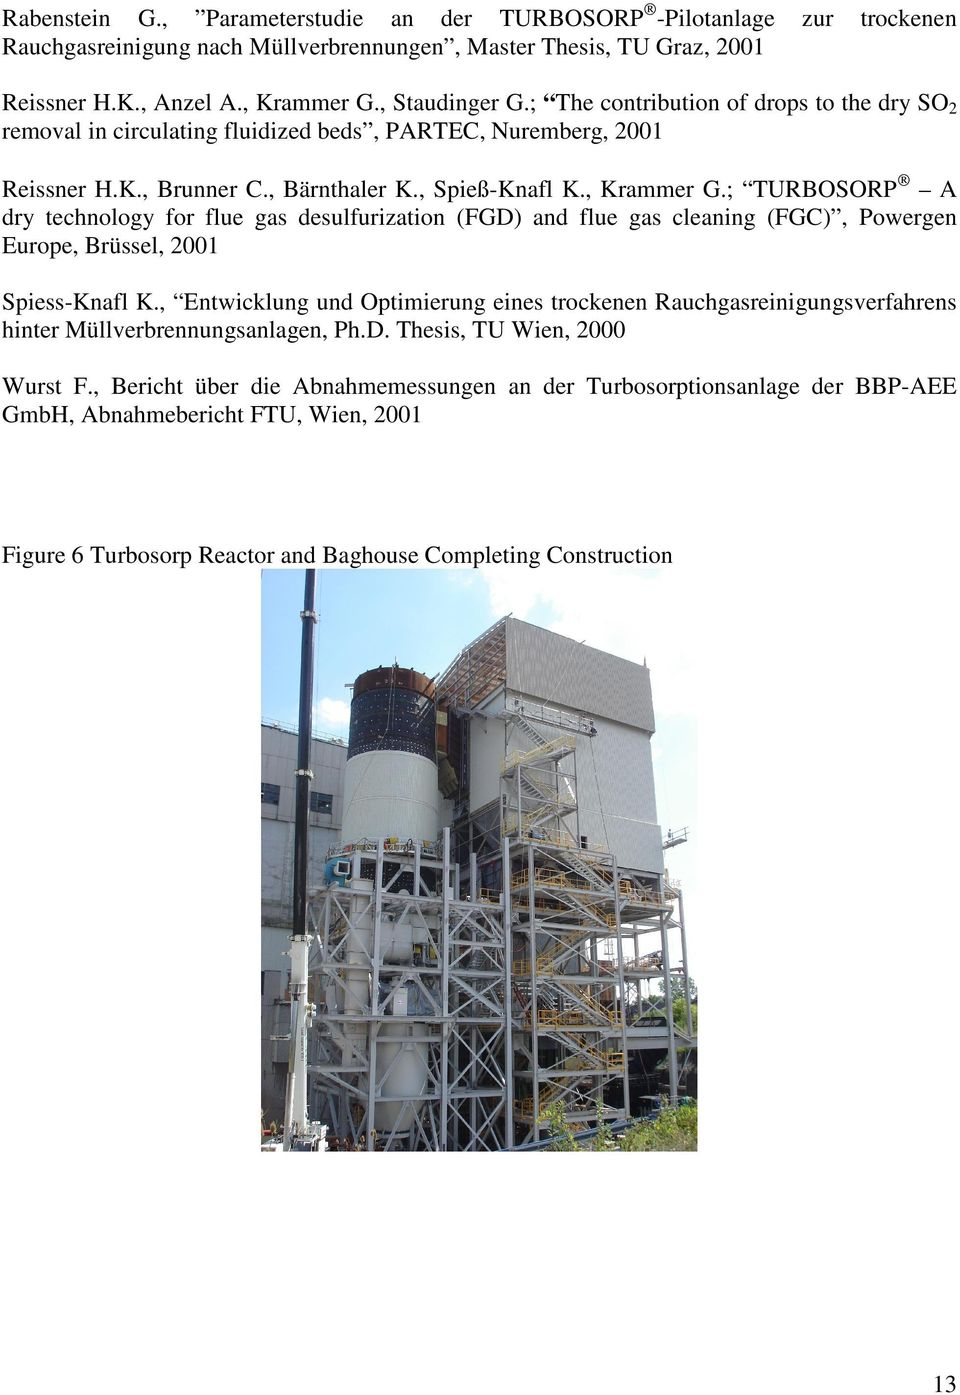 ; TURBOSORP A dry technology for flue gas desulfurization (FGD) and flue gas cleaning (FGC), Powergen Europe, Brüssel, 2001 Spiess-Knafl K.